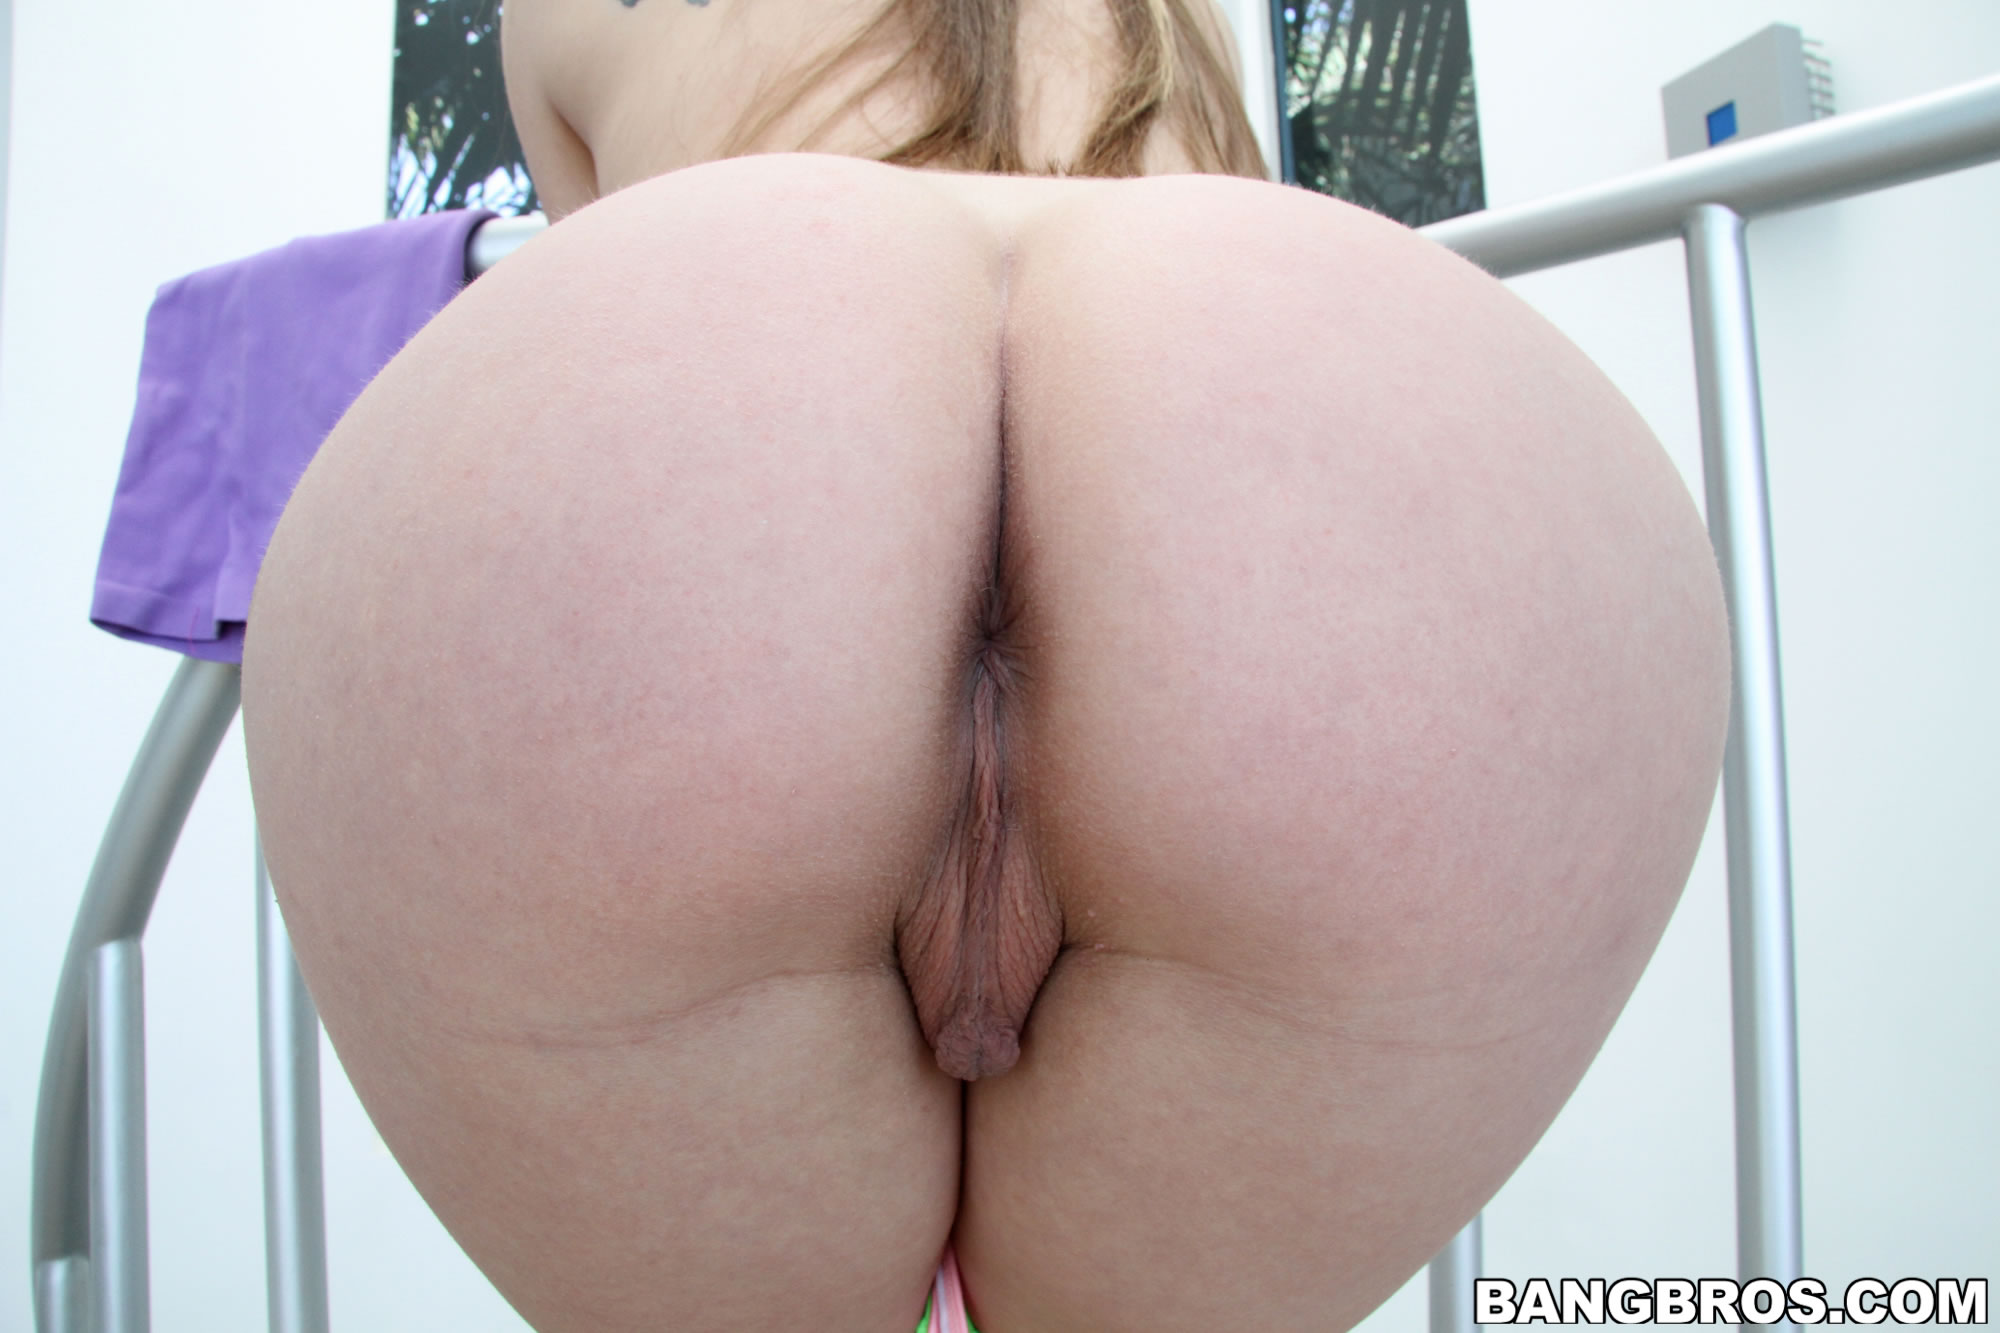 Pawg big white ass